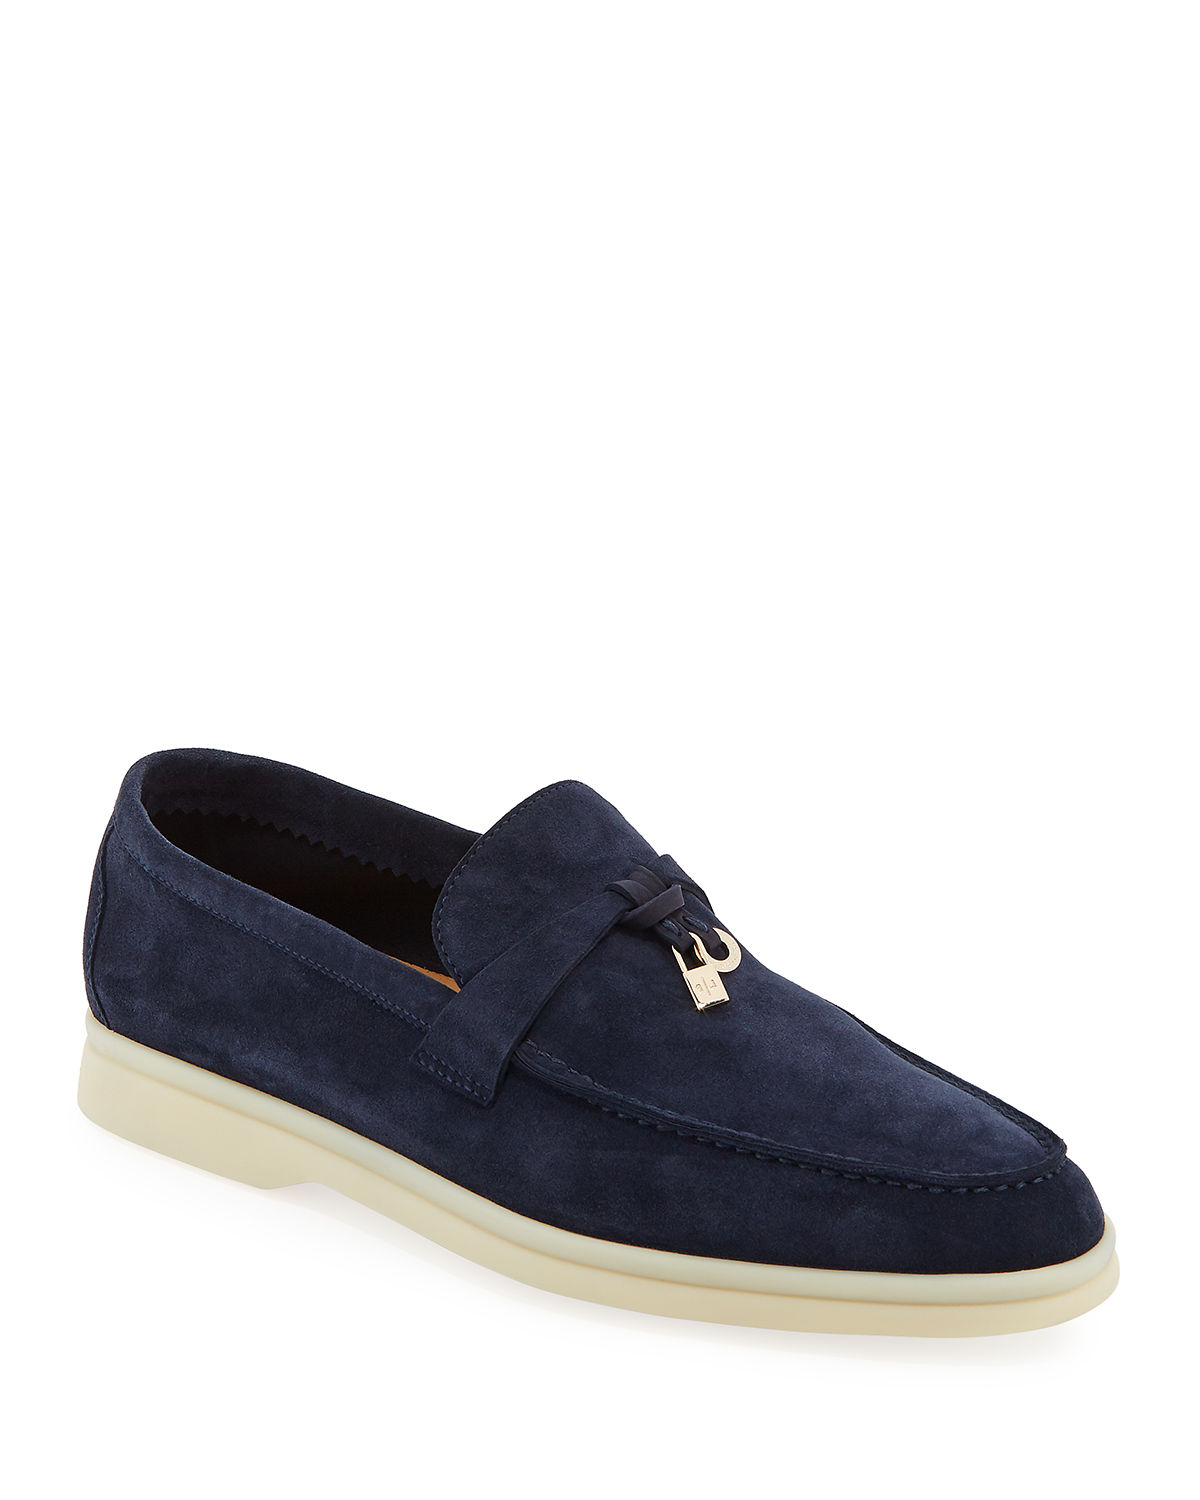 94da223ee84 Loro Piana Summer Charms Walk Suede Loafers